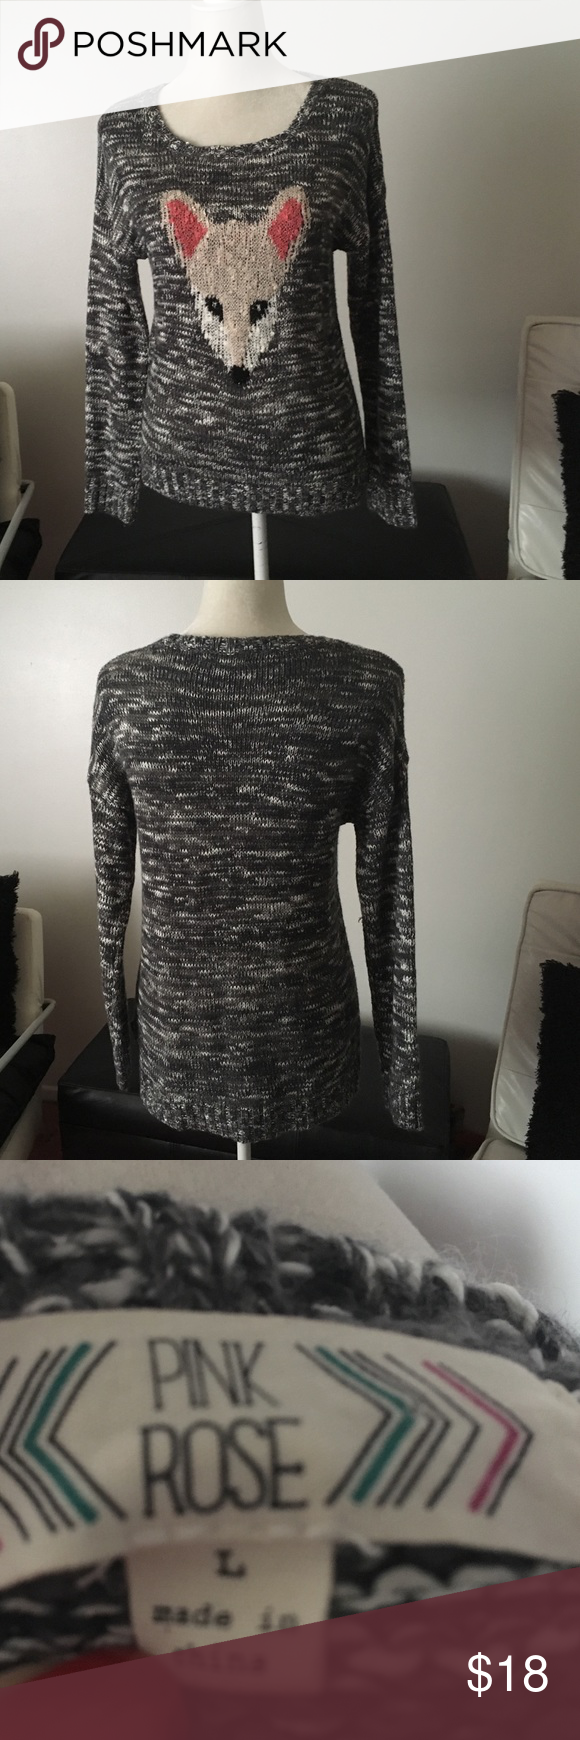 """Sweater by """"Pink Rose"""" In very good condition. Hi/low sweater. Sits lower in the back. Gray and white in color with the exception of the front design Pink Rose Sweaters"""